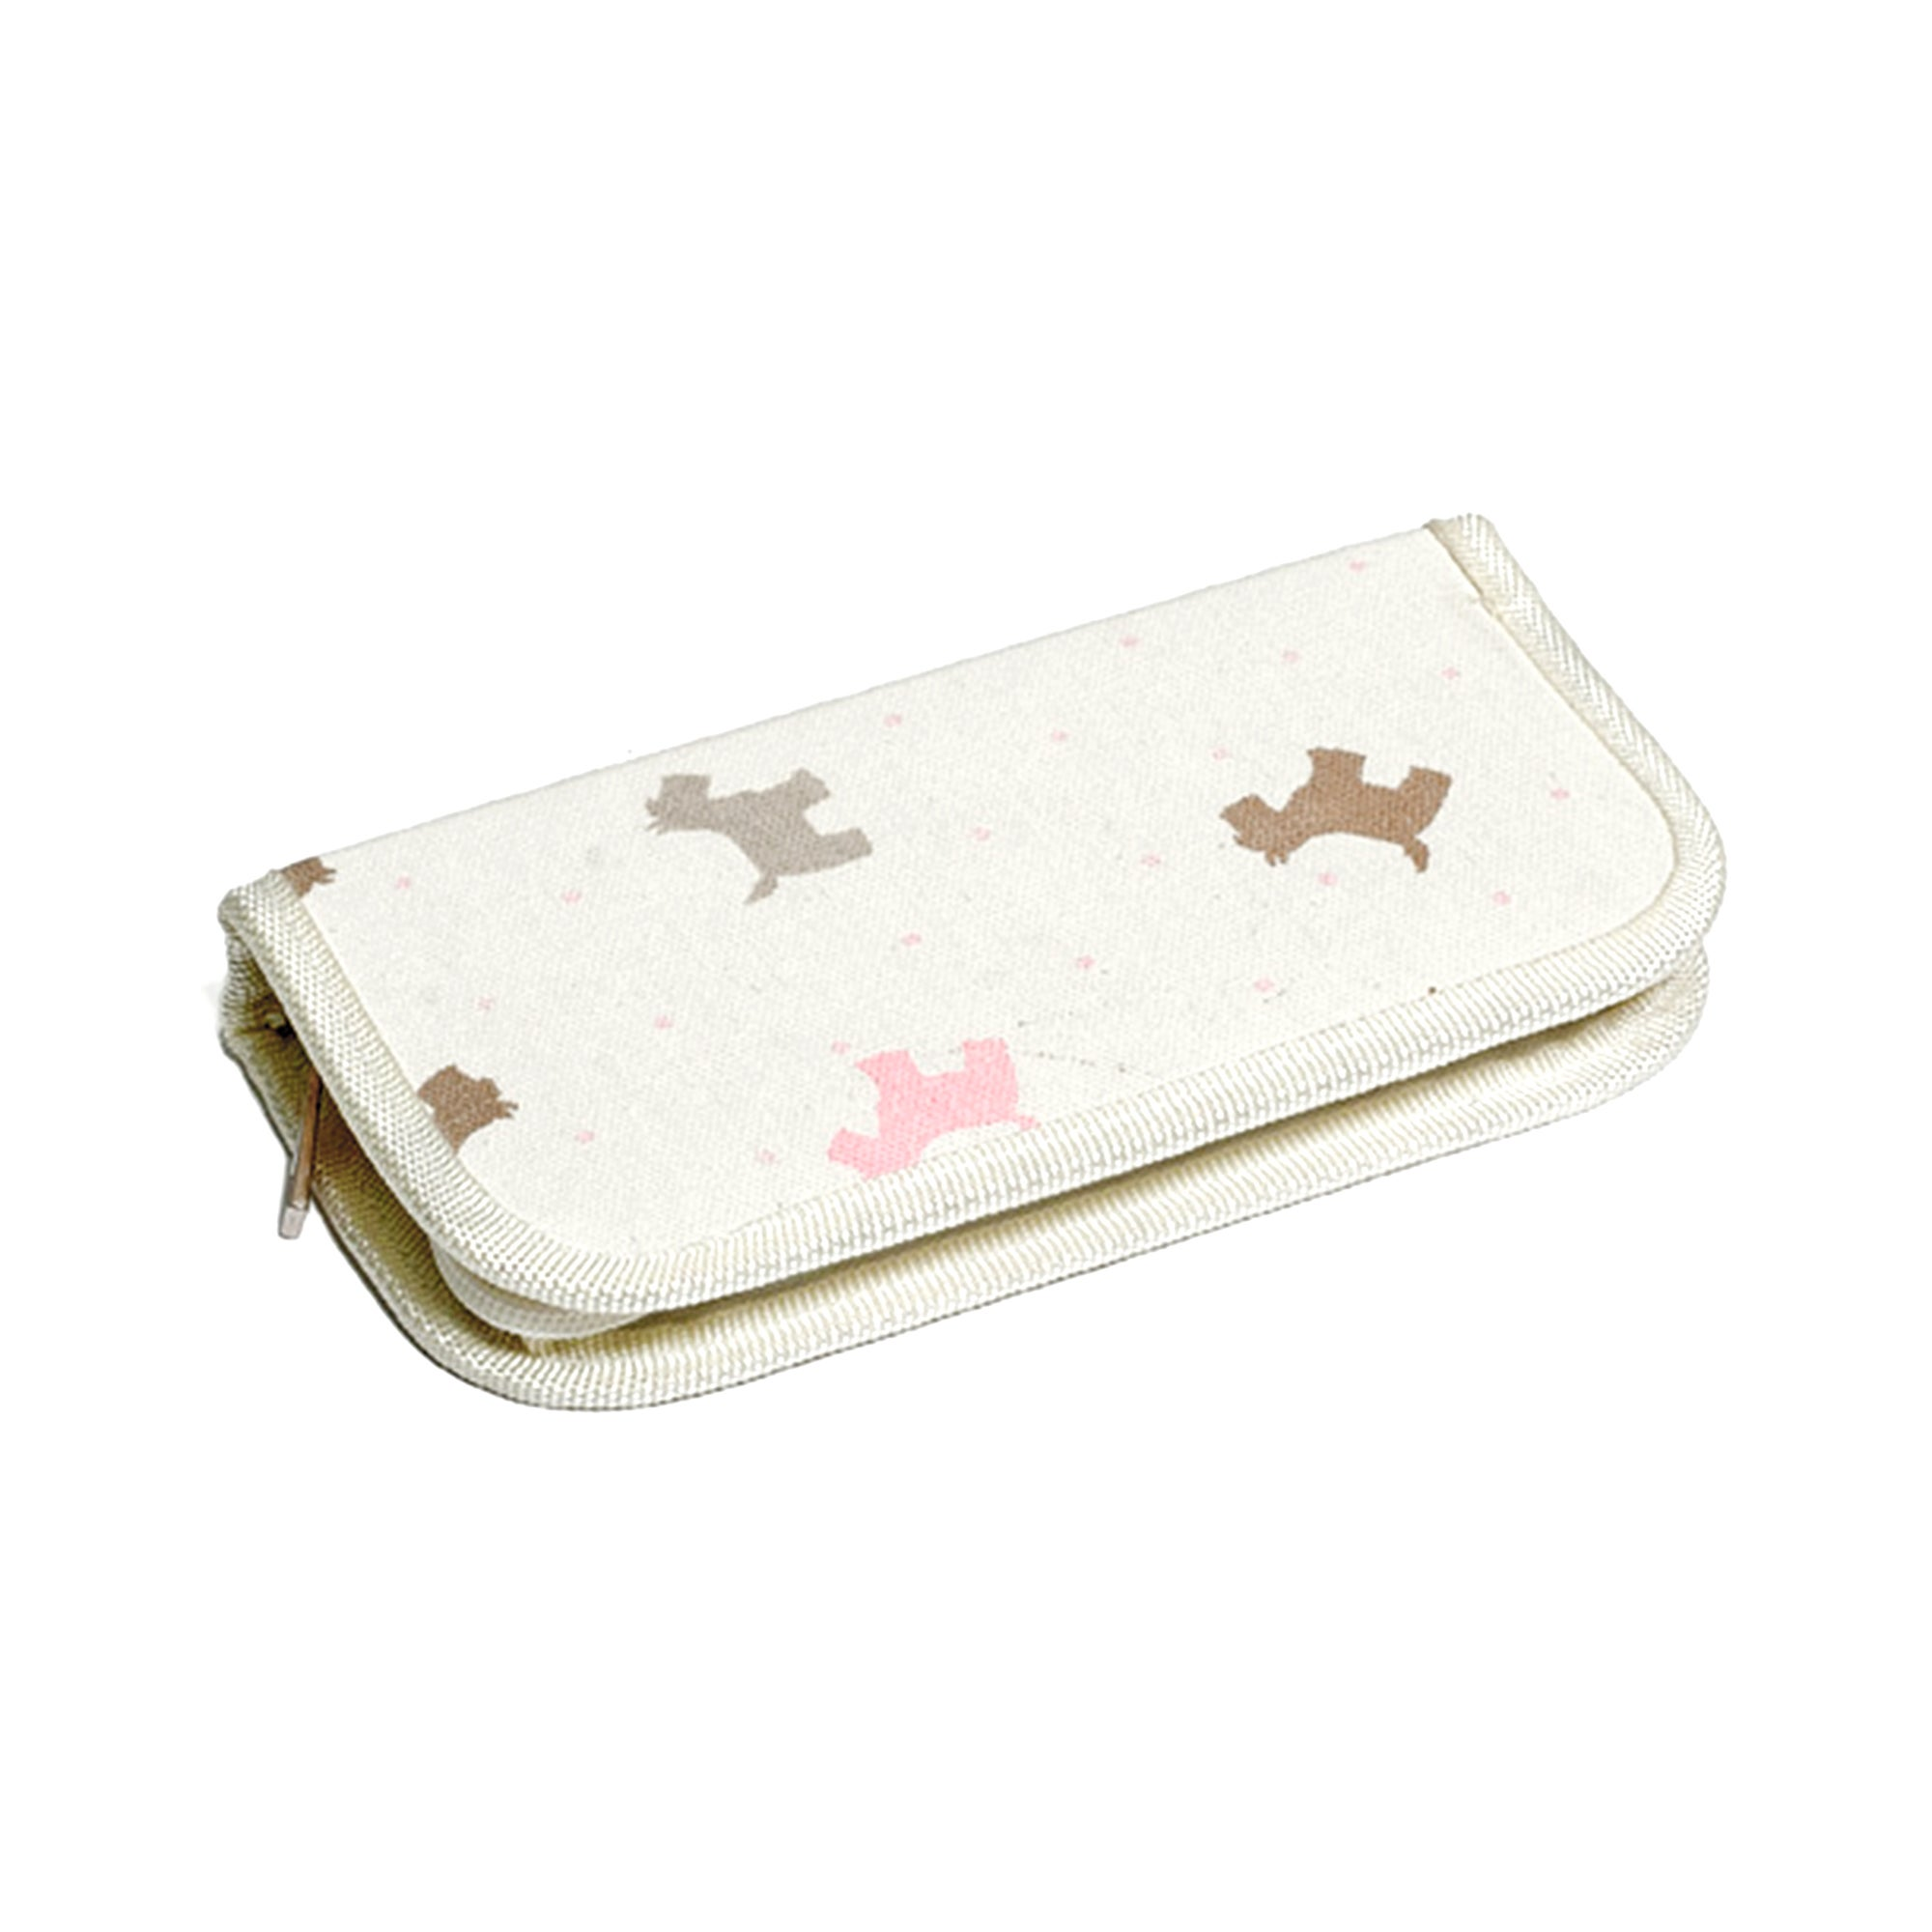 Scotty Dog Knitting Pin Case